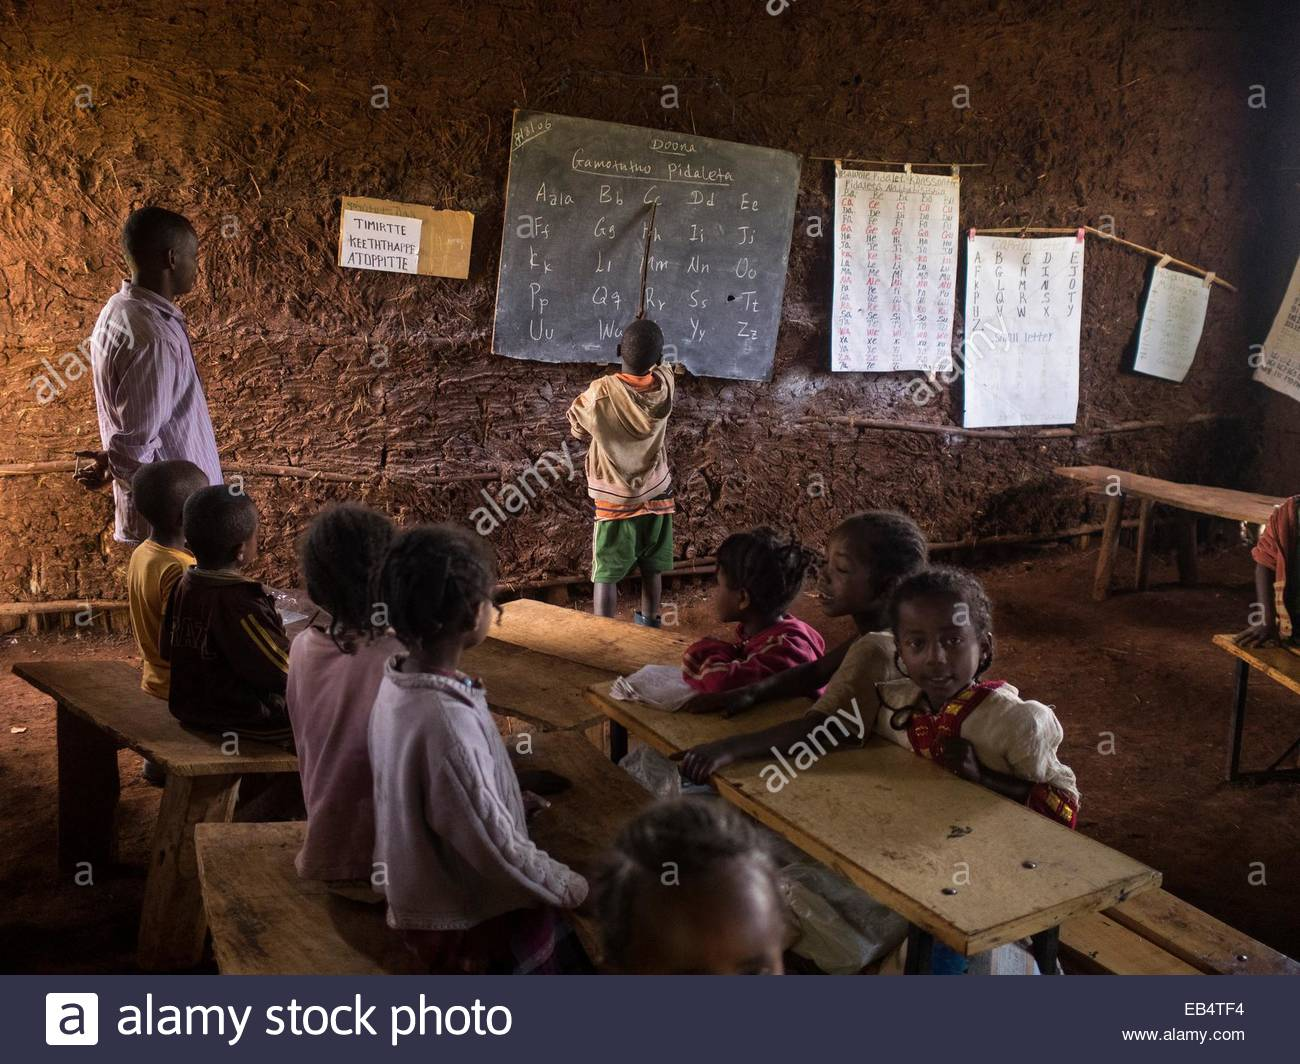 A boy points to Latin alphabet letters on a blackboard. - Stock Image